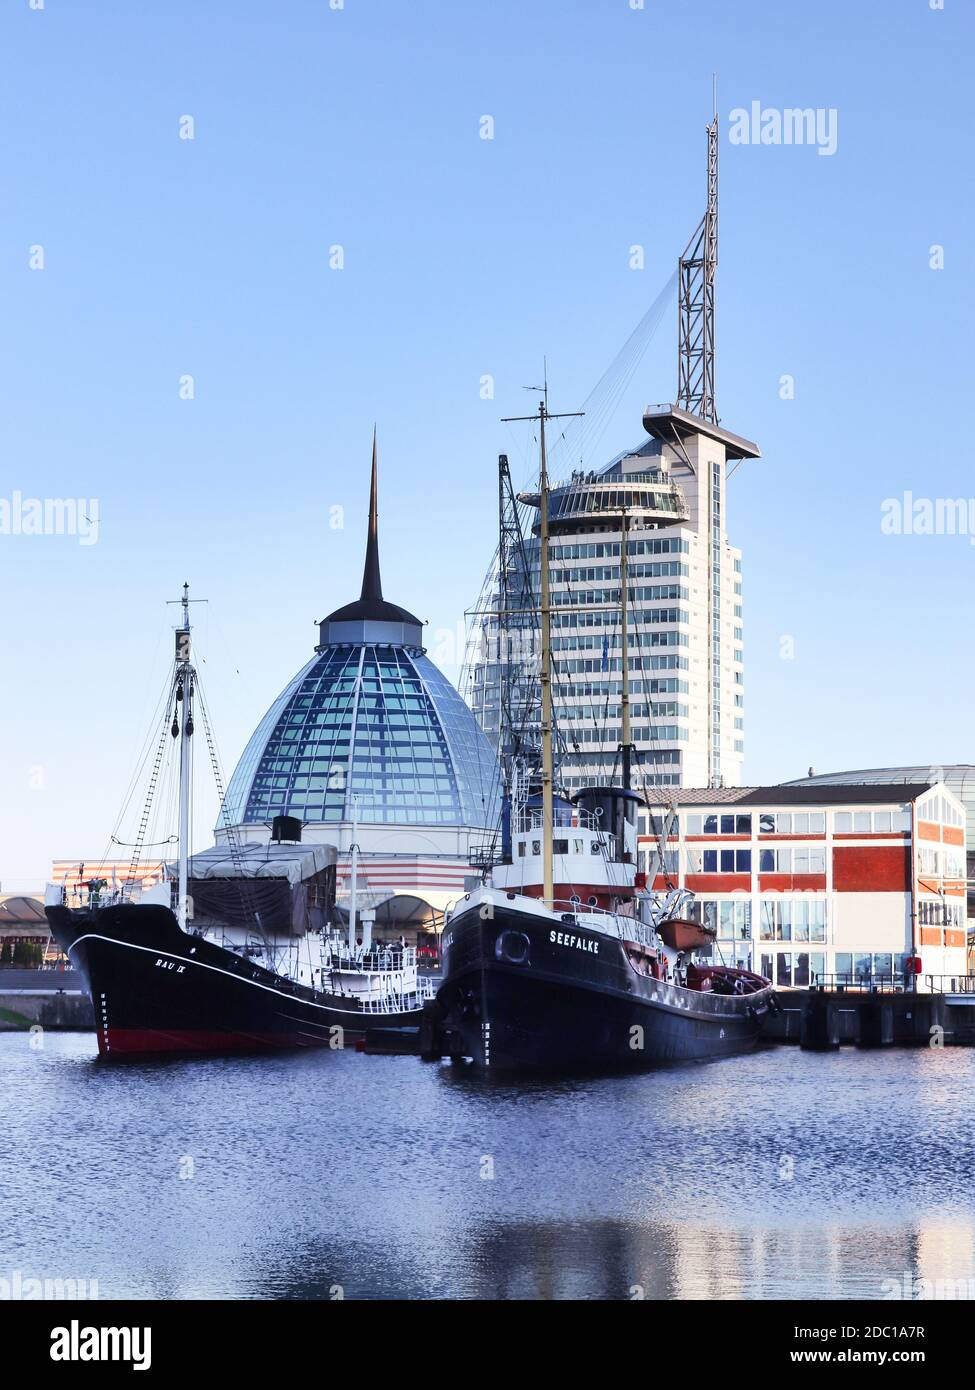 BREMERHAVEN, GERMANY - MAY 15, 2018: Bremerhaven cityscape with Harbor Worlds, a maritime tourism center. Stock Photo